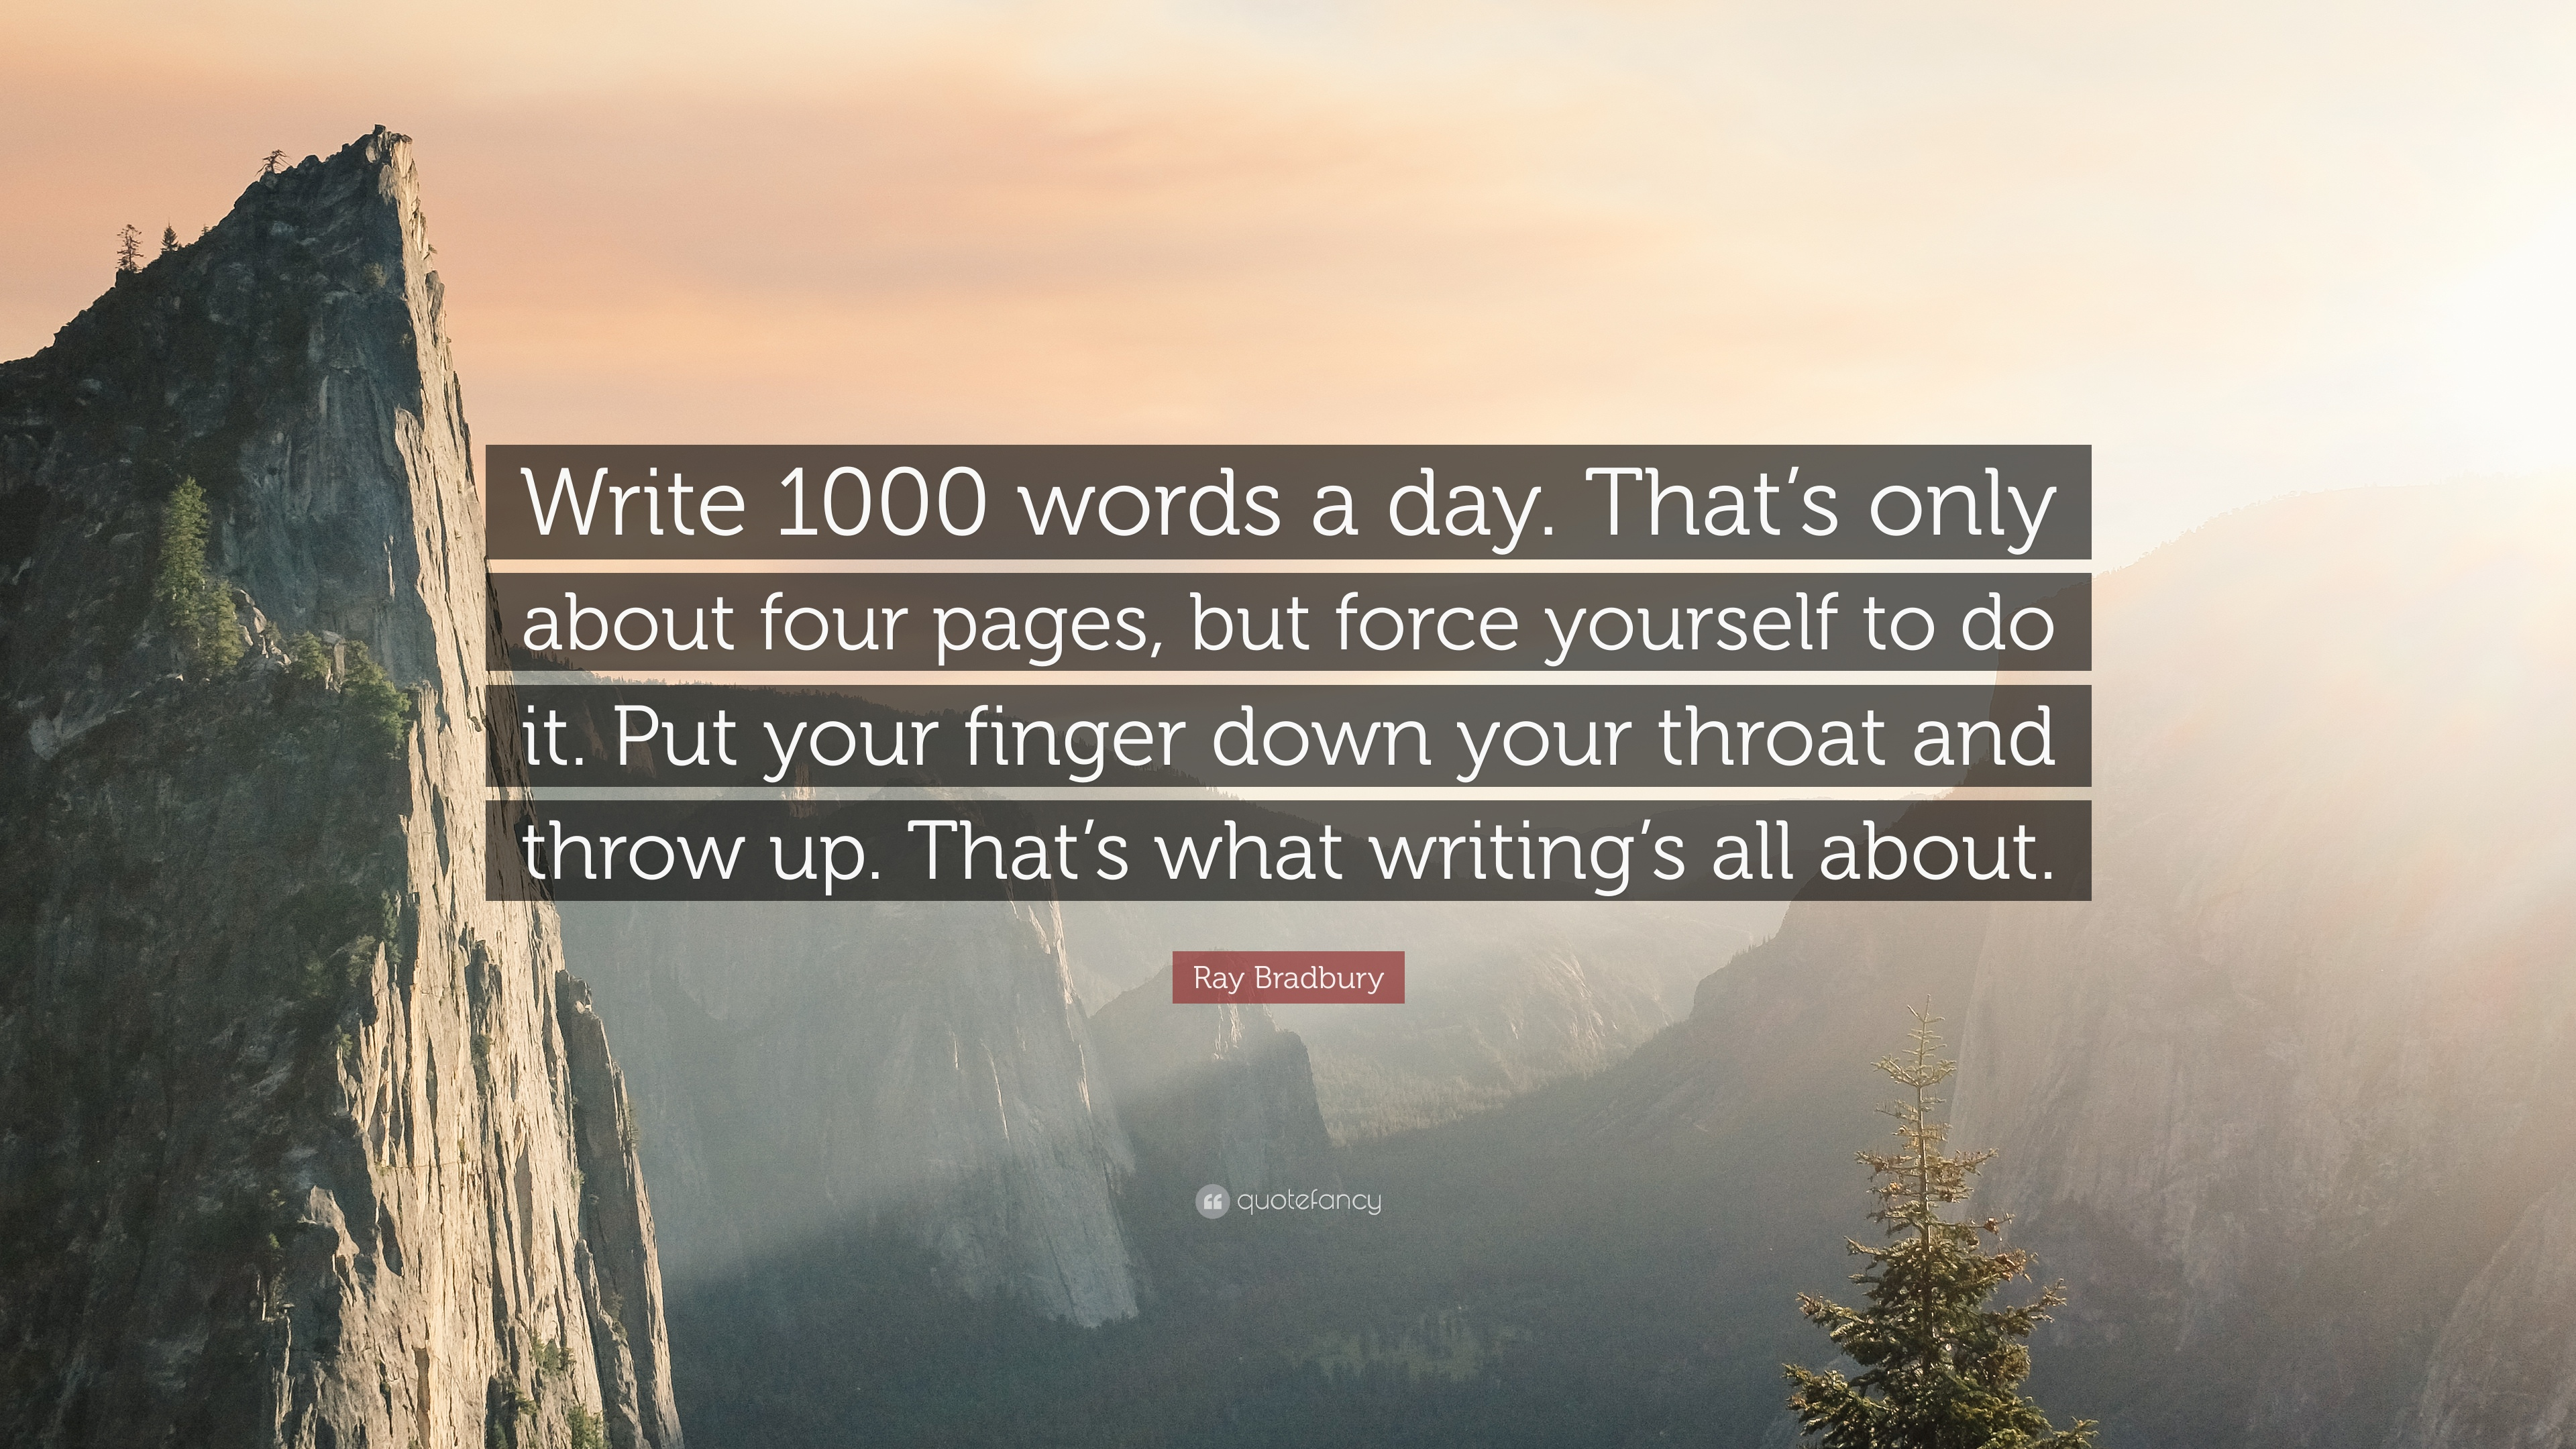 Writing 1000 words a day